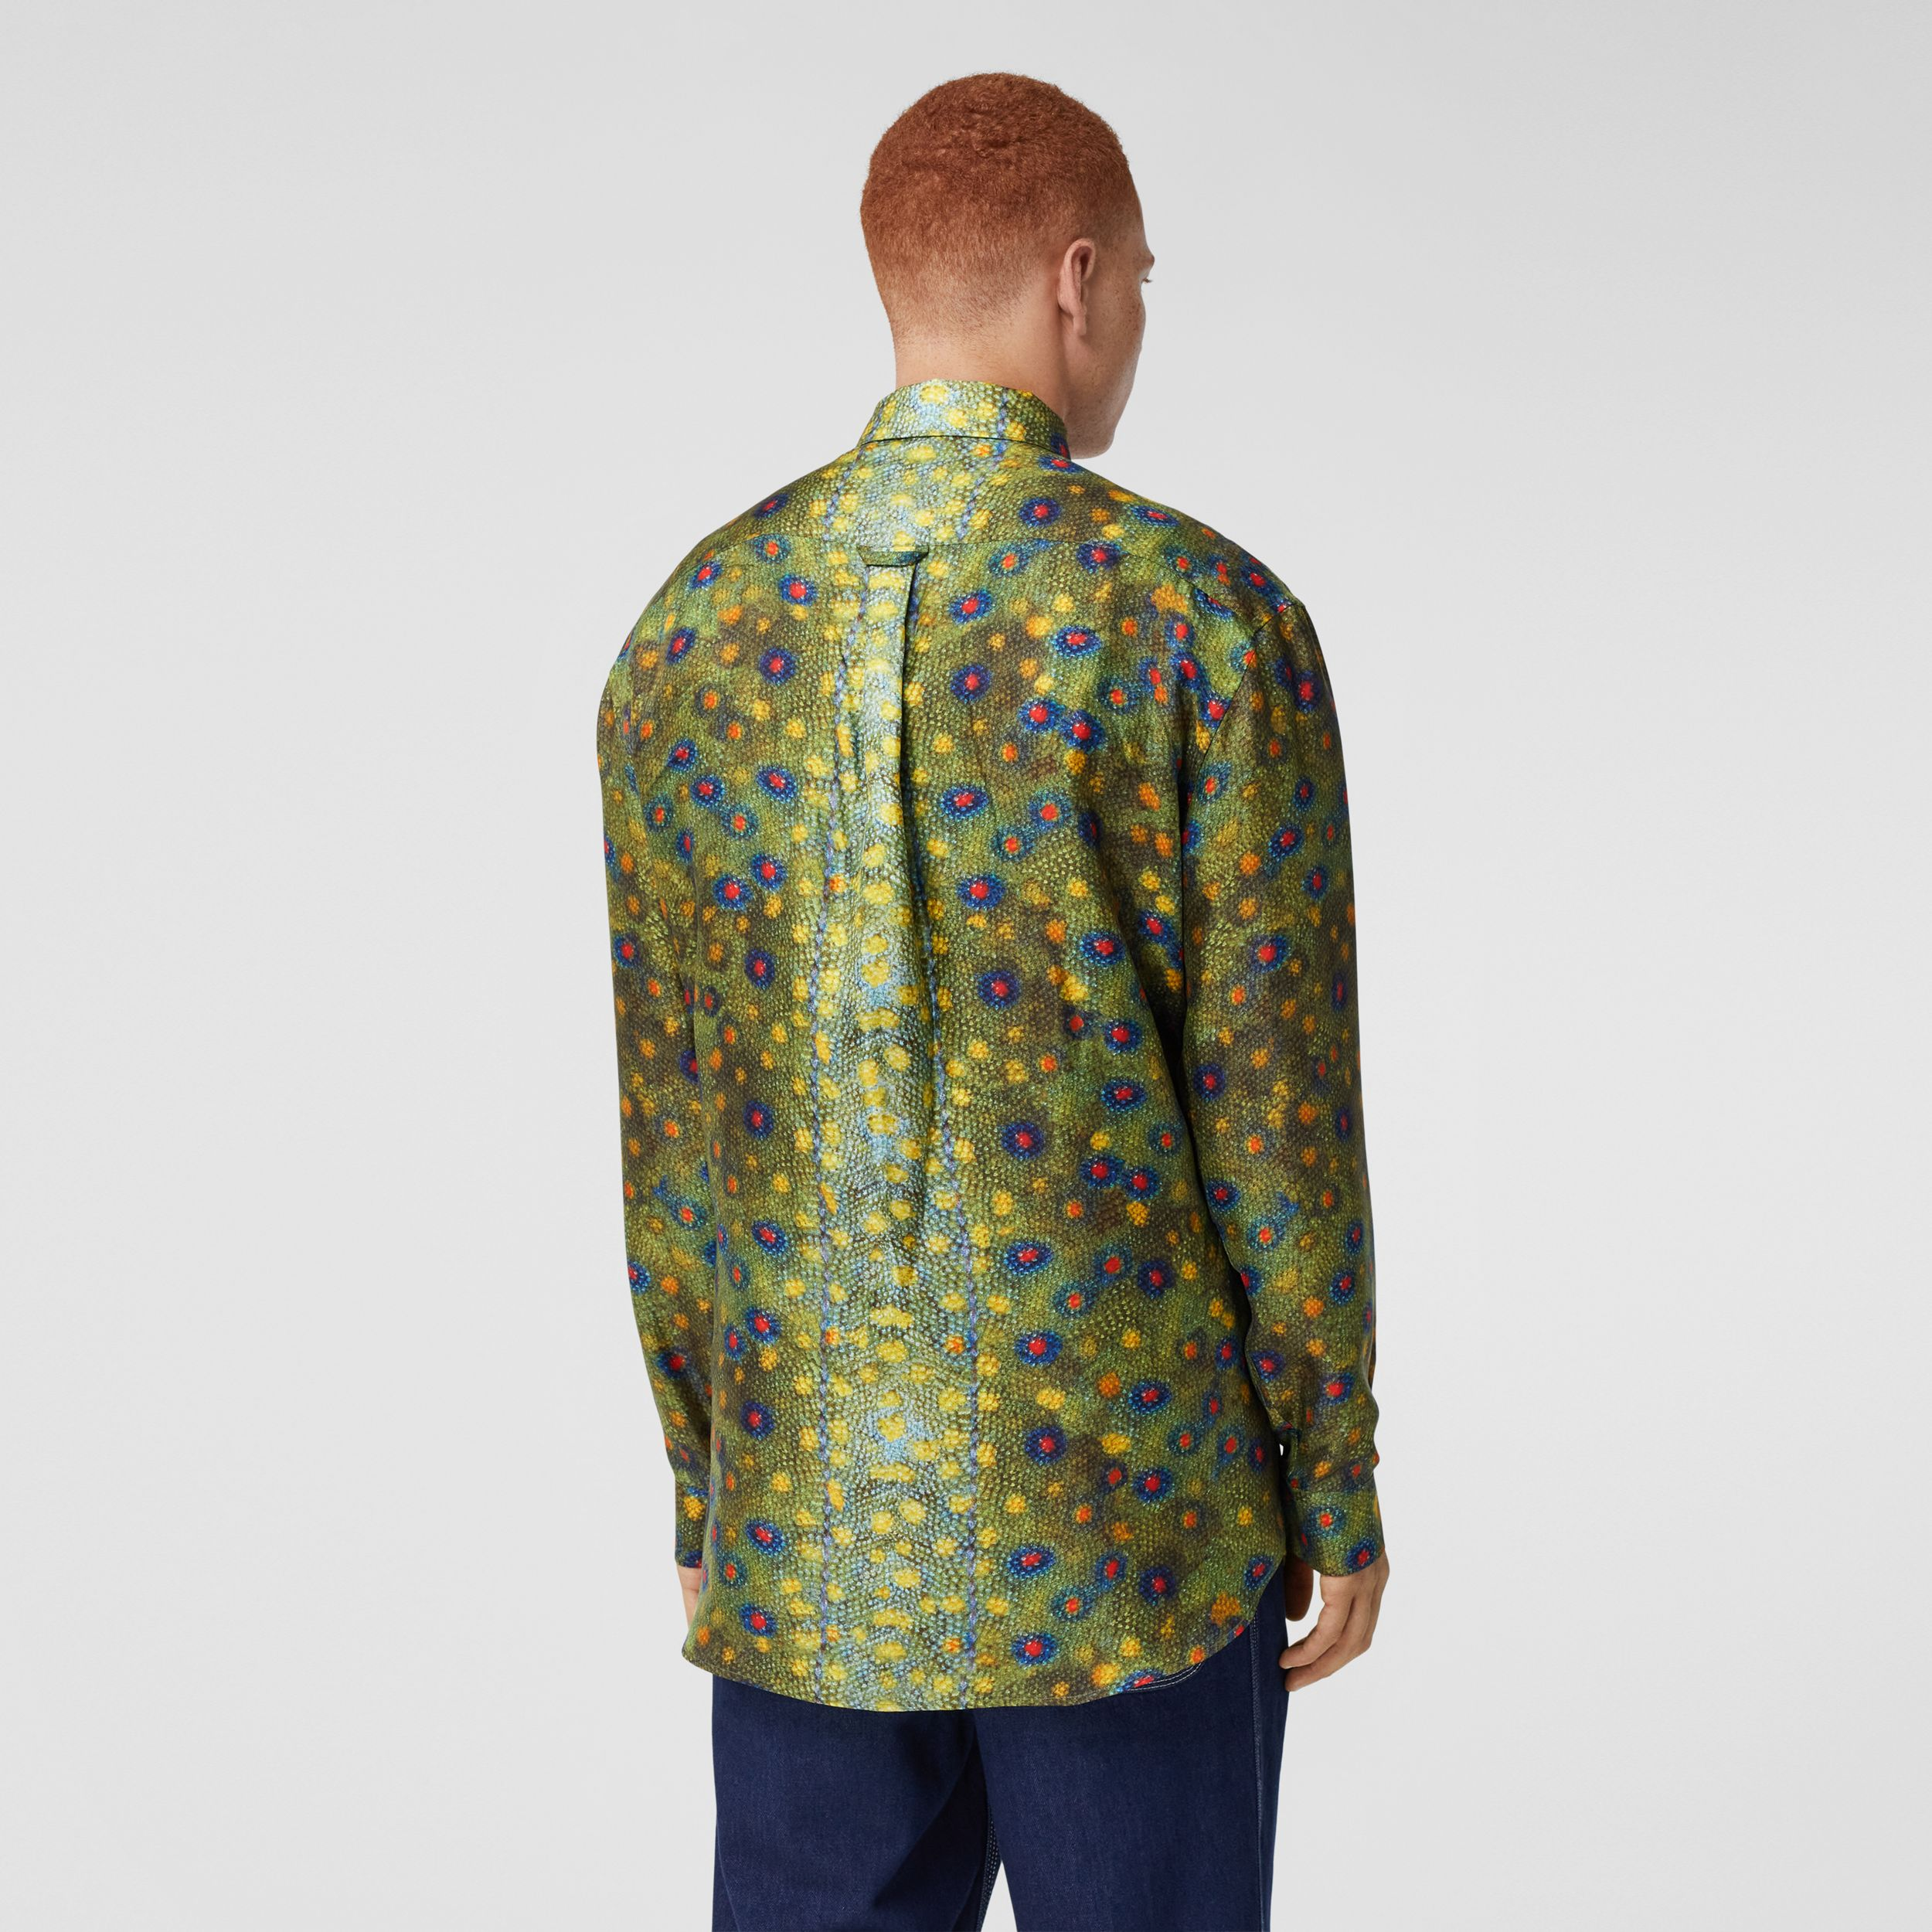 Fish-scale Print Silk Shirt in Olive - Men | Burberry United Kingdom - 3